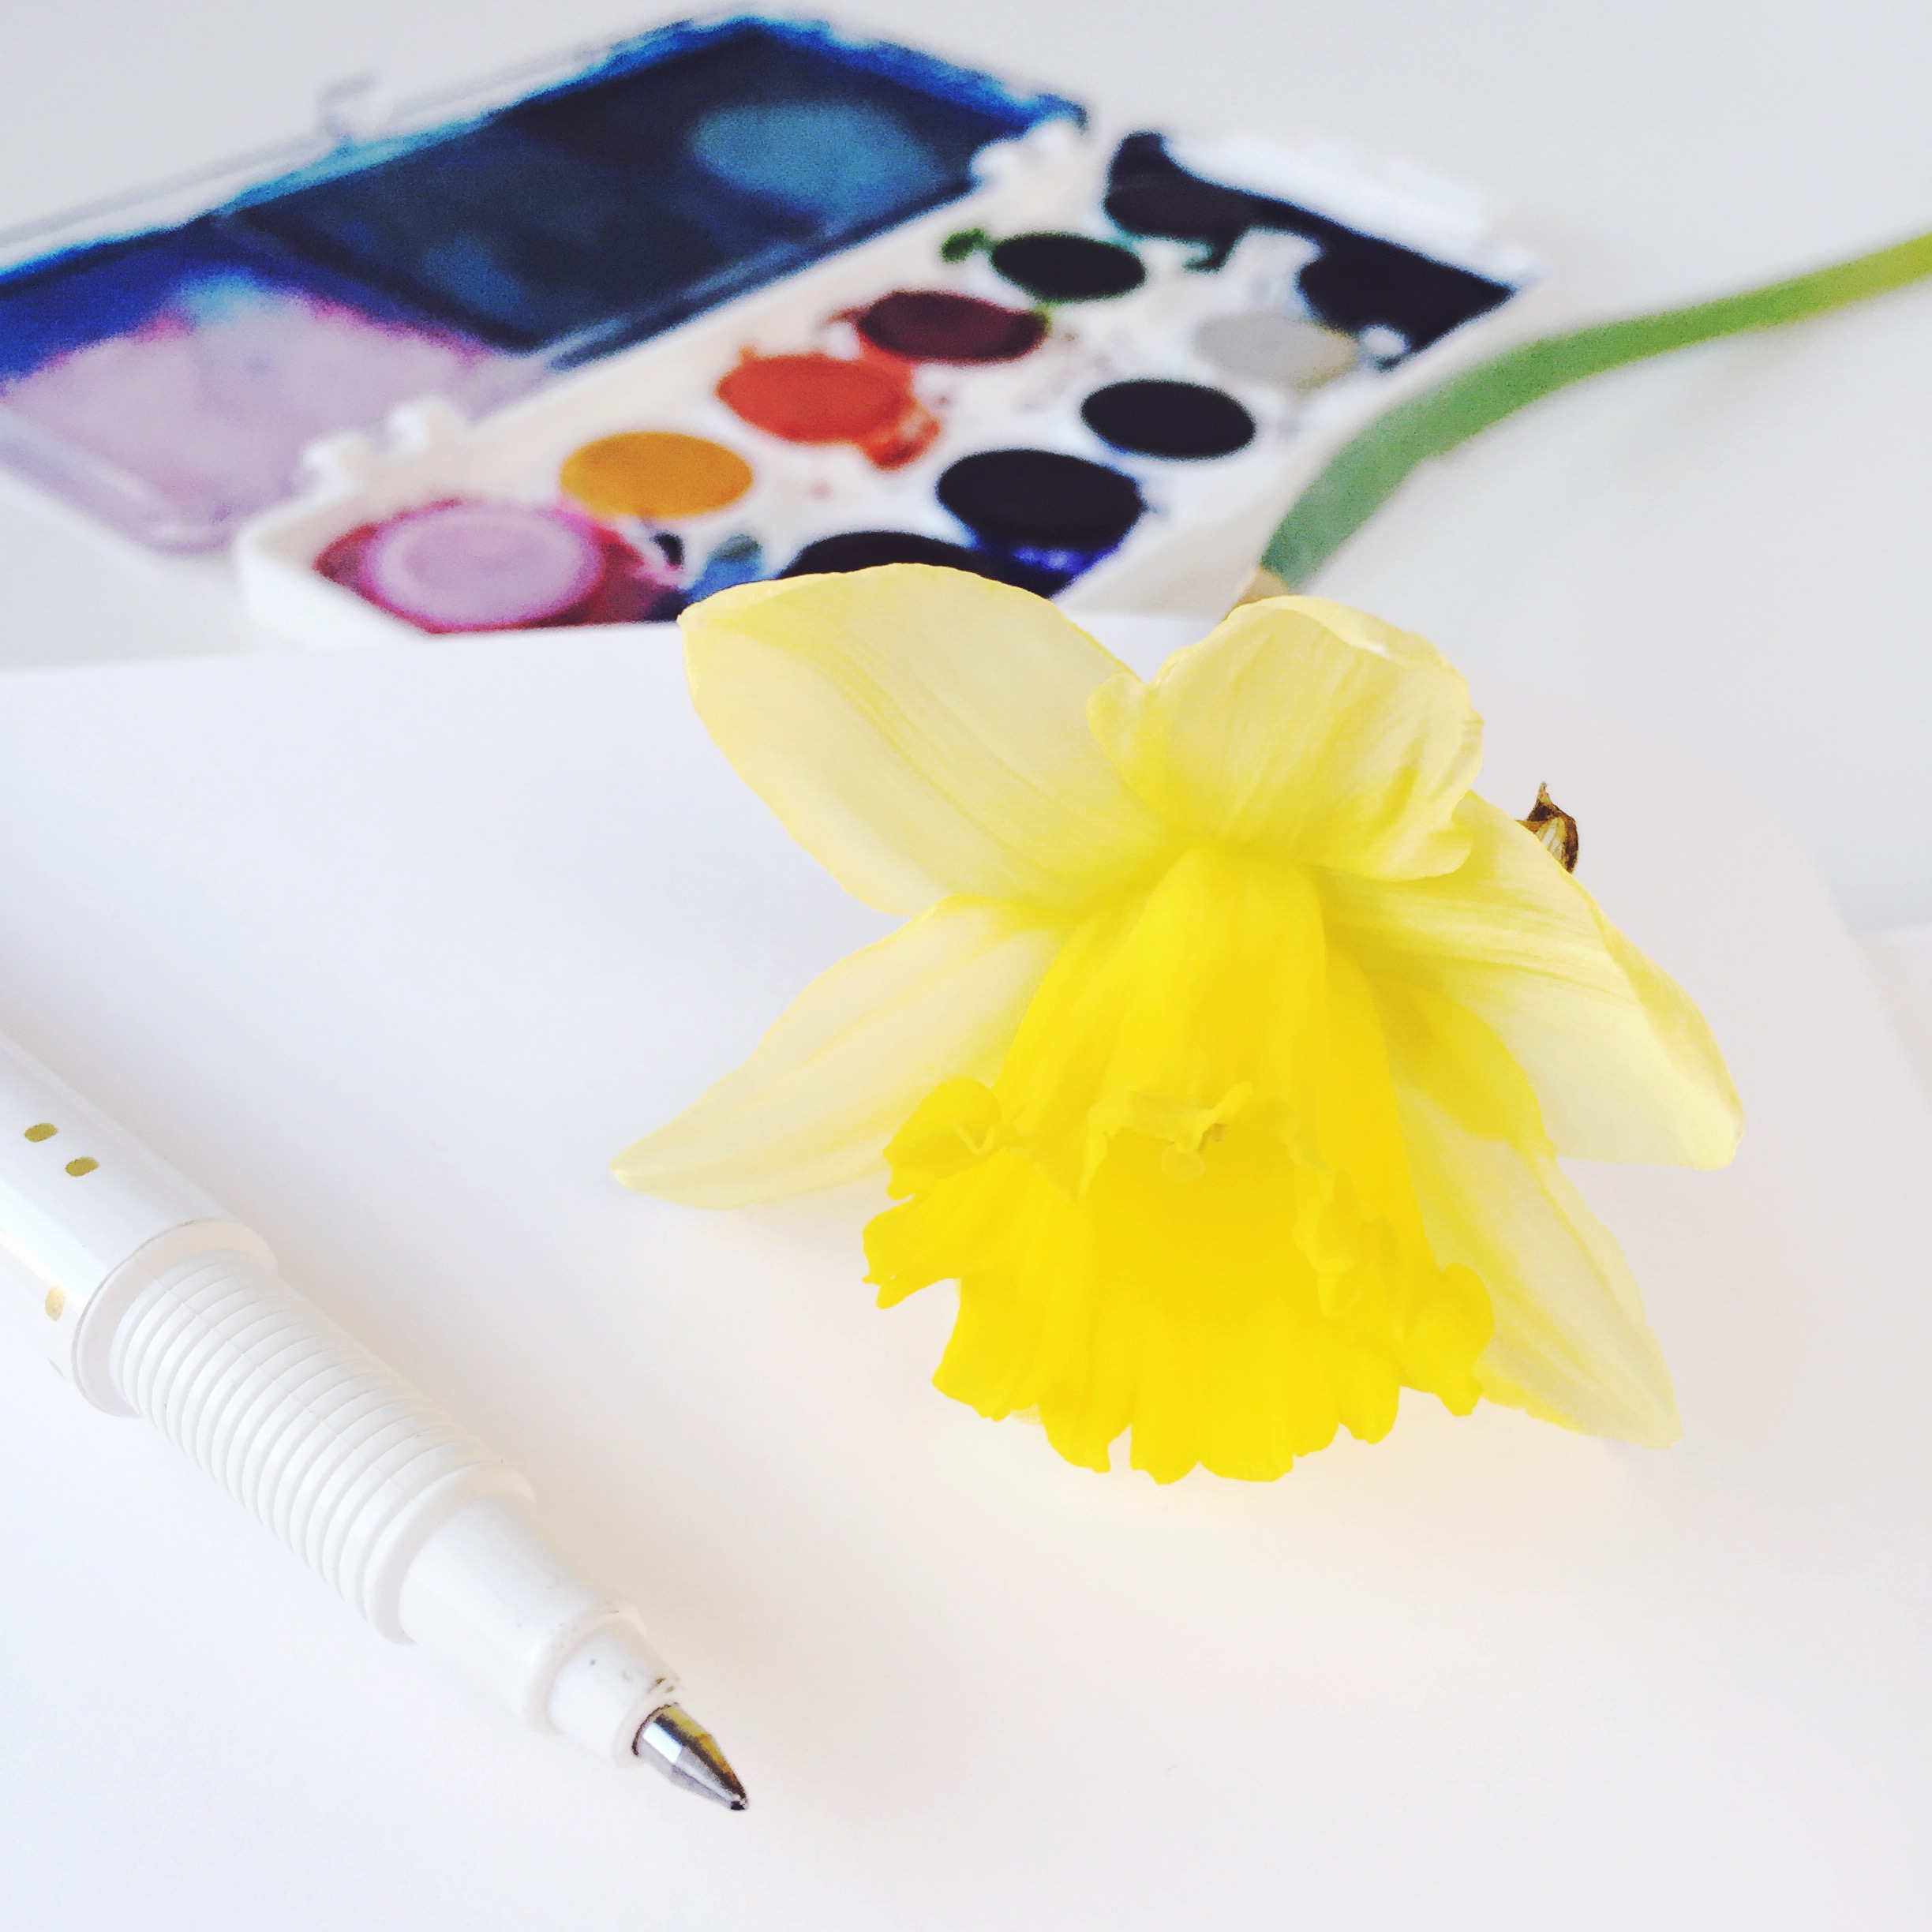 Daffodil sketchbook1